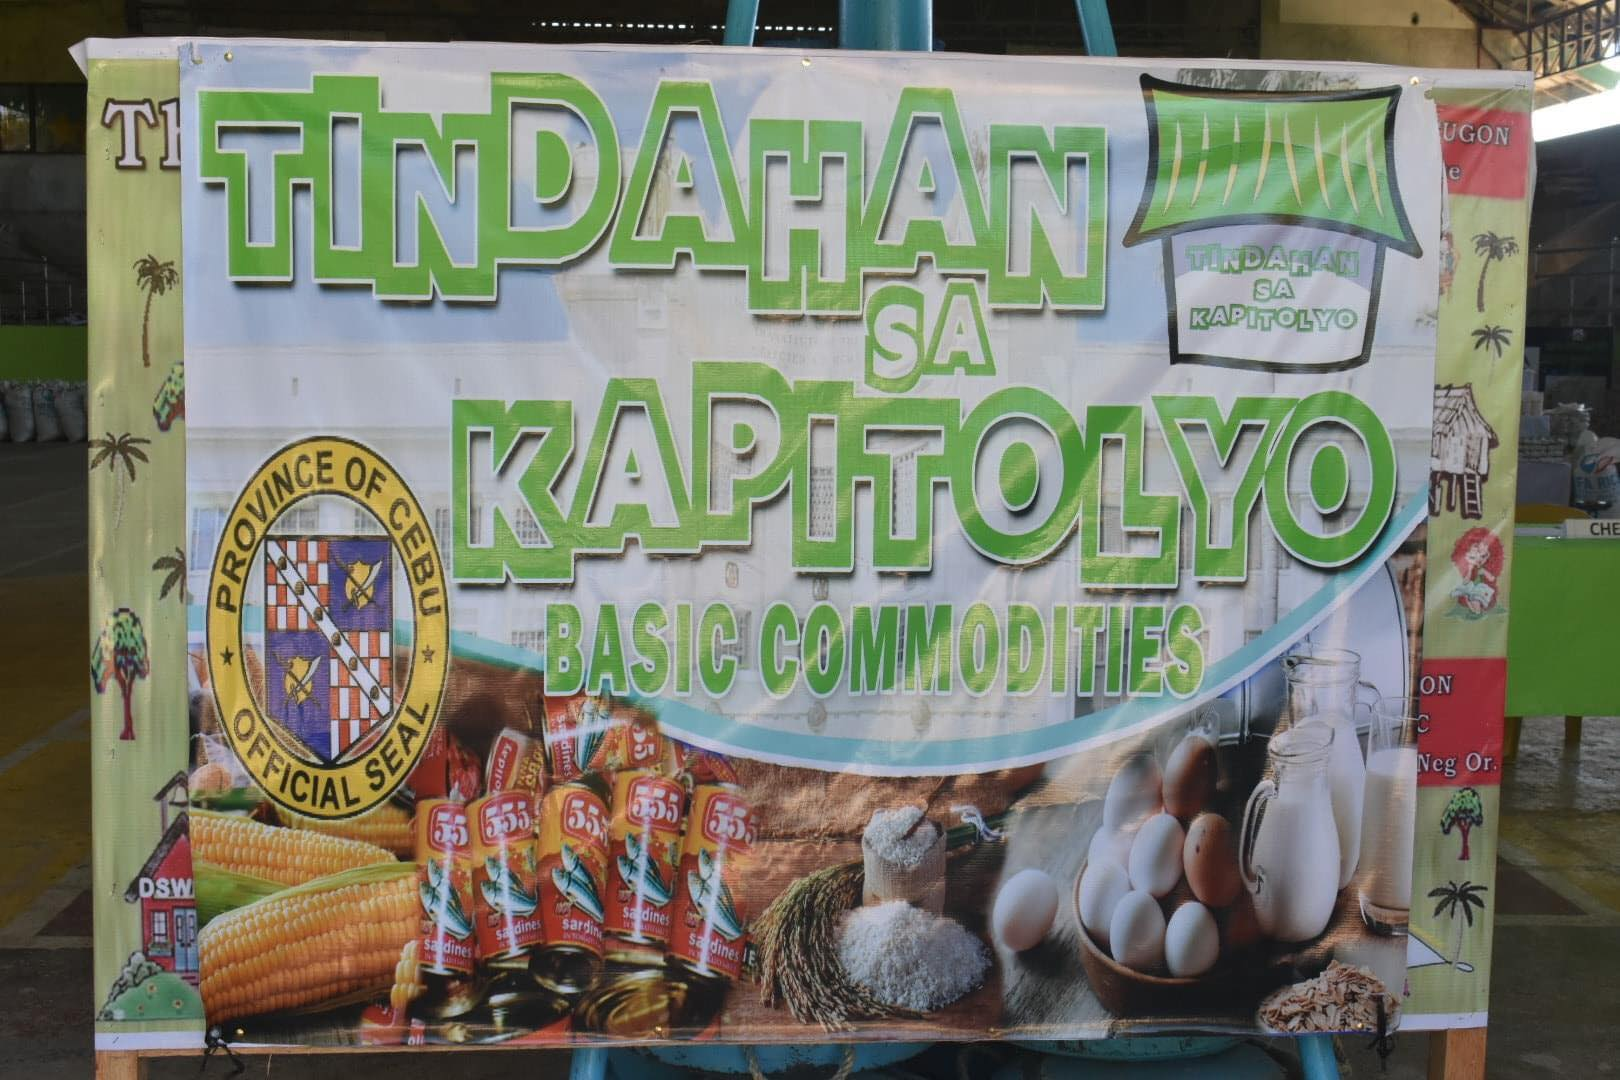 EXTENSION OF 'TINDAHAN SA KAPITOLYO' MULLED